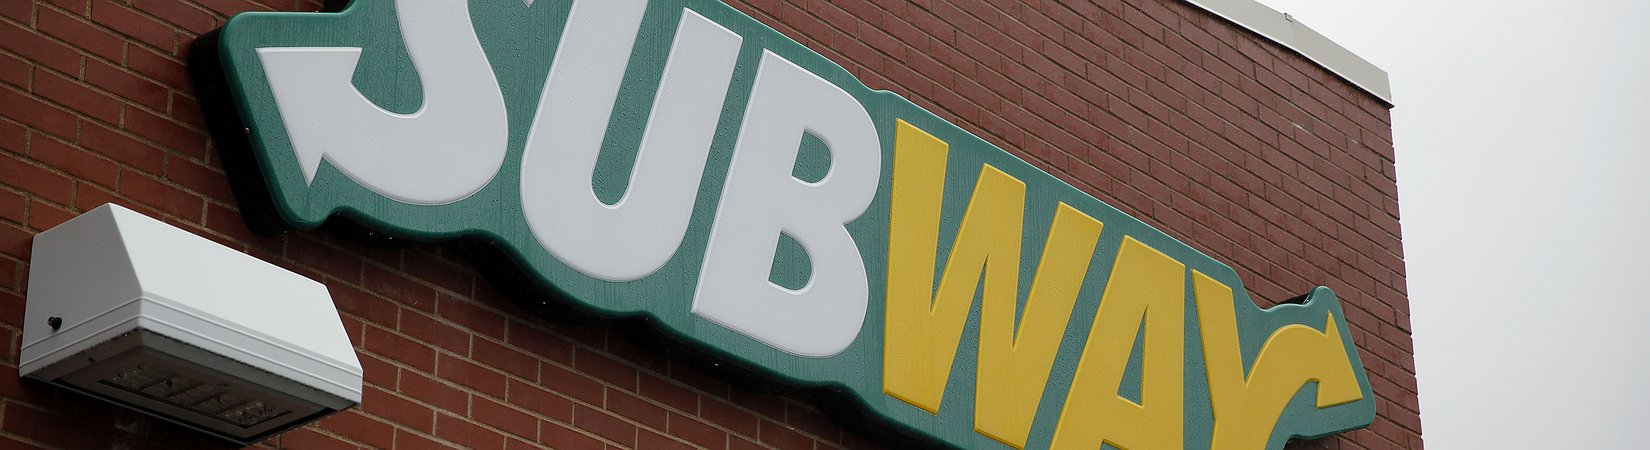 Subway suing Canadian TV network over 'soy chicken' claims